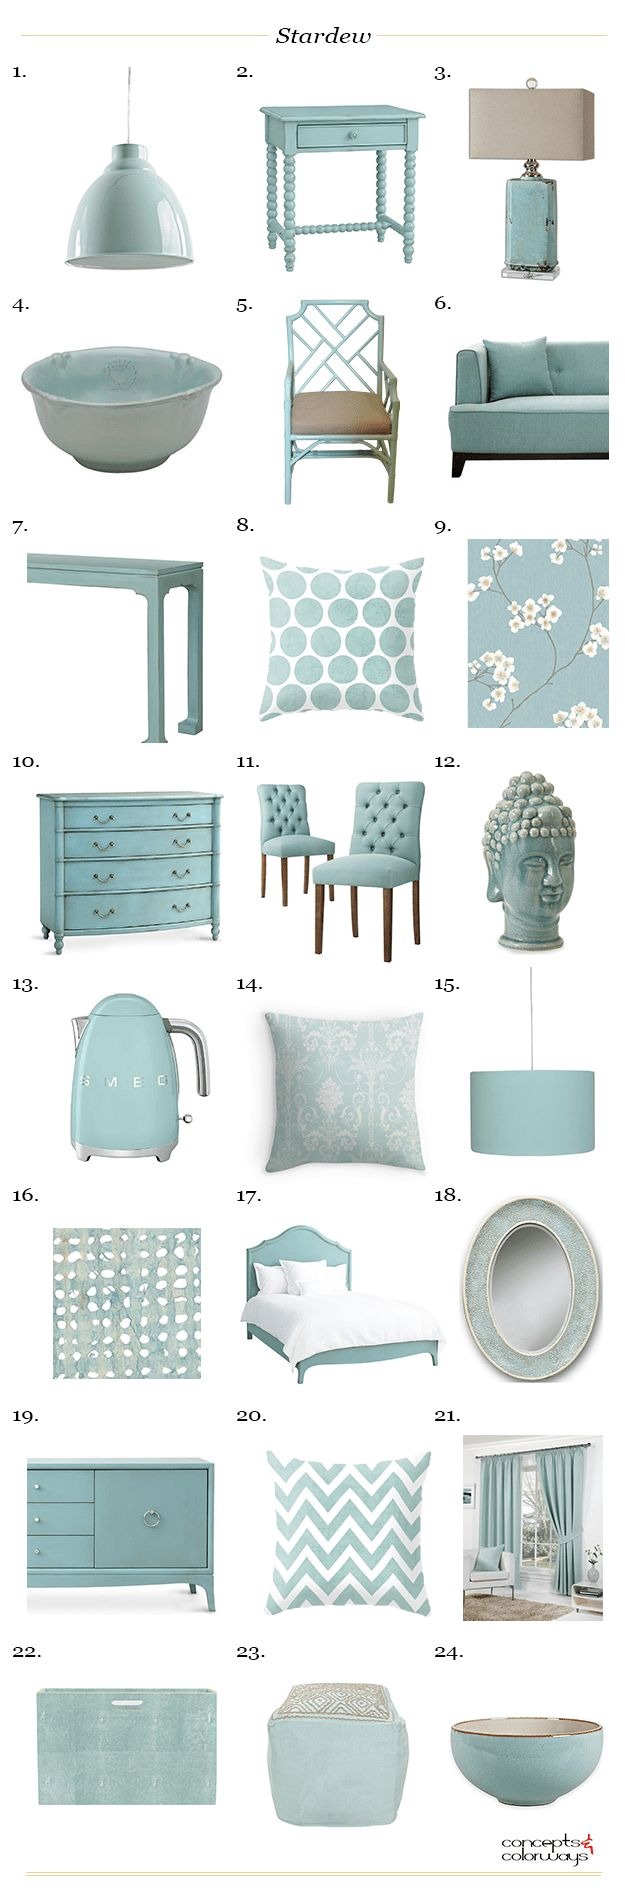 Robins Kitchen Garden City 17 Best Ideas About Robin Egg Blue On Pinterest Robins Egg Blue